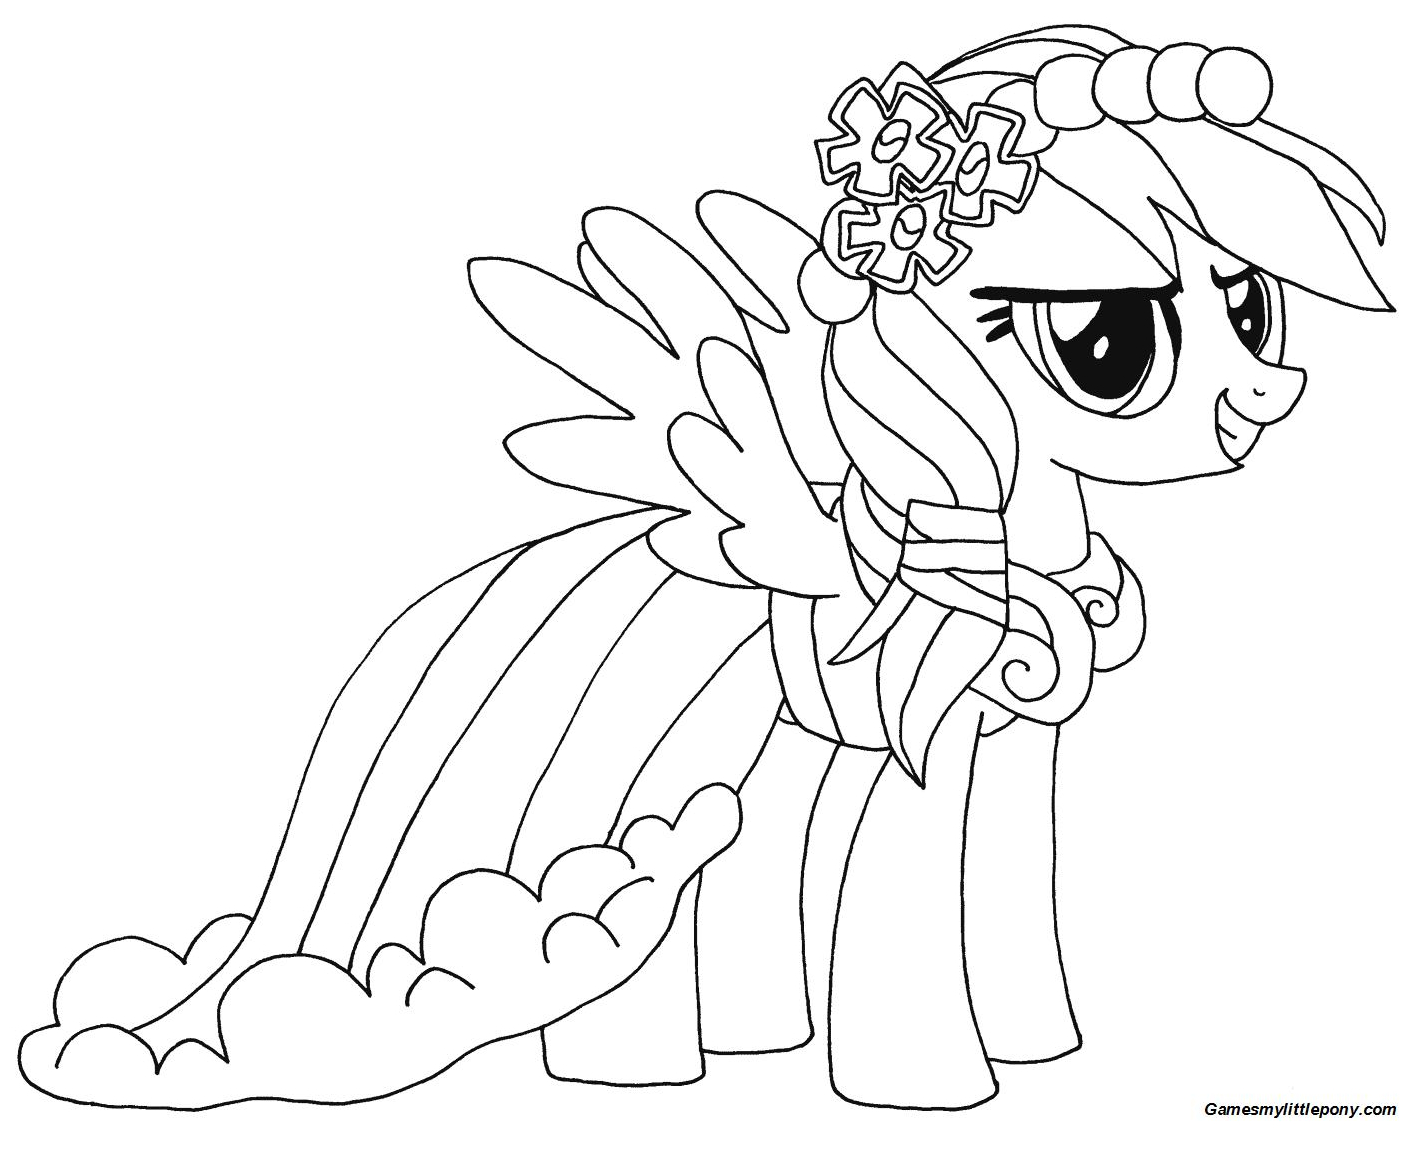 Rainbow Dash from My Little Pony Coloring Page